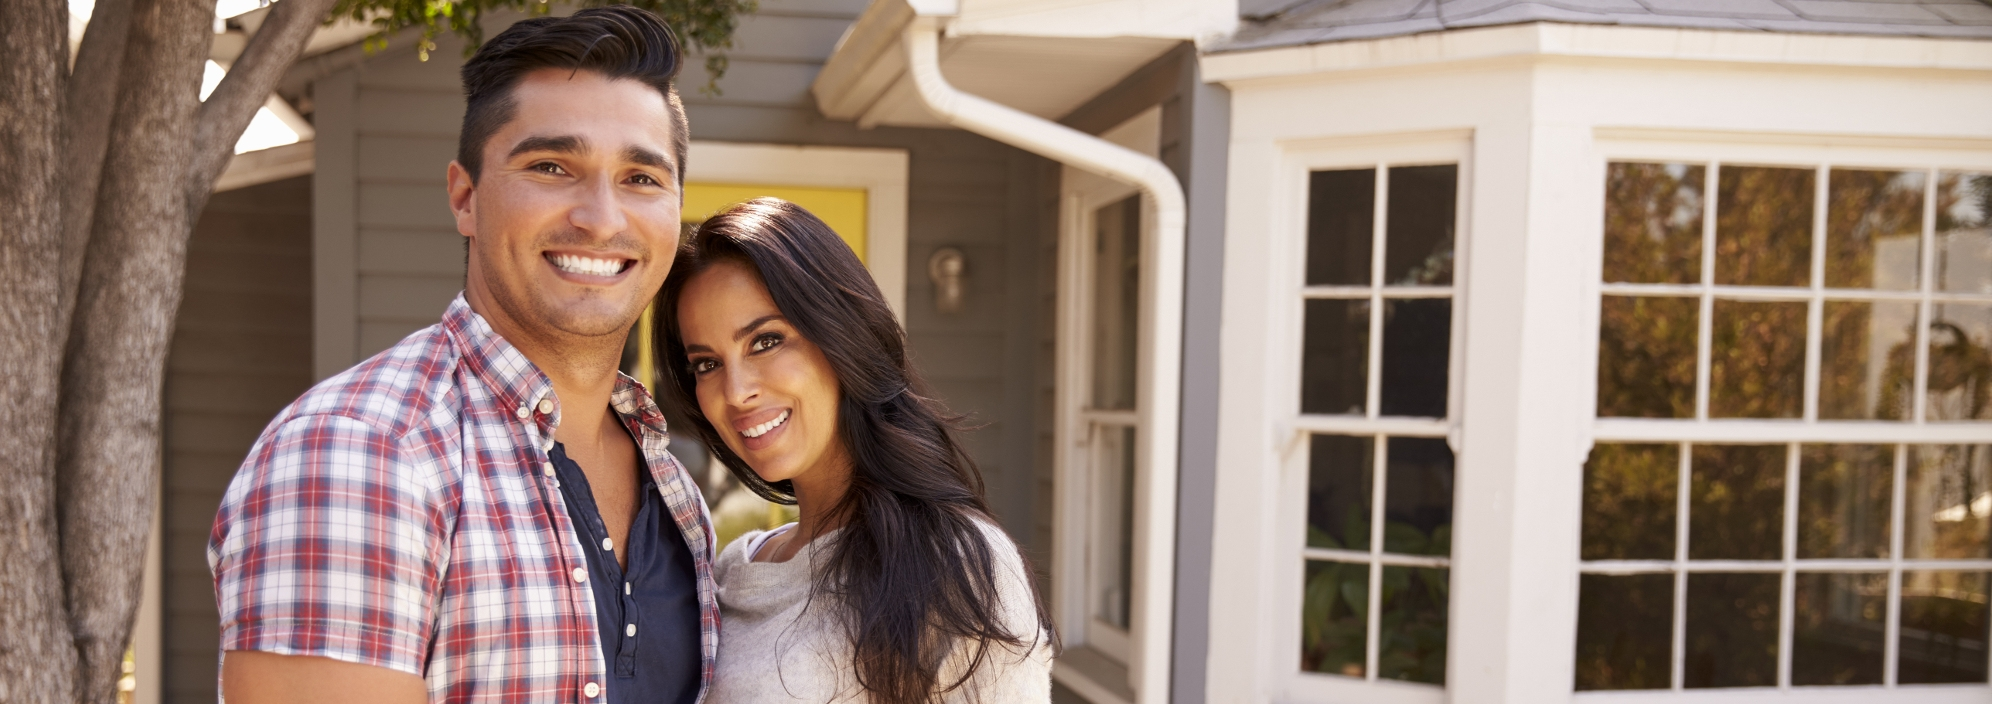 The PERFECT HOME is waiting for you - let us find you the perfect loan to go with it!